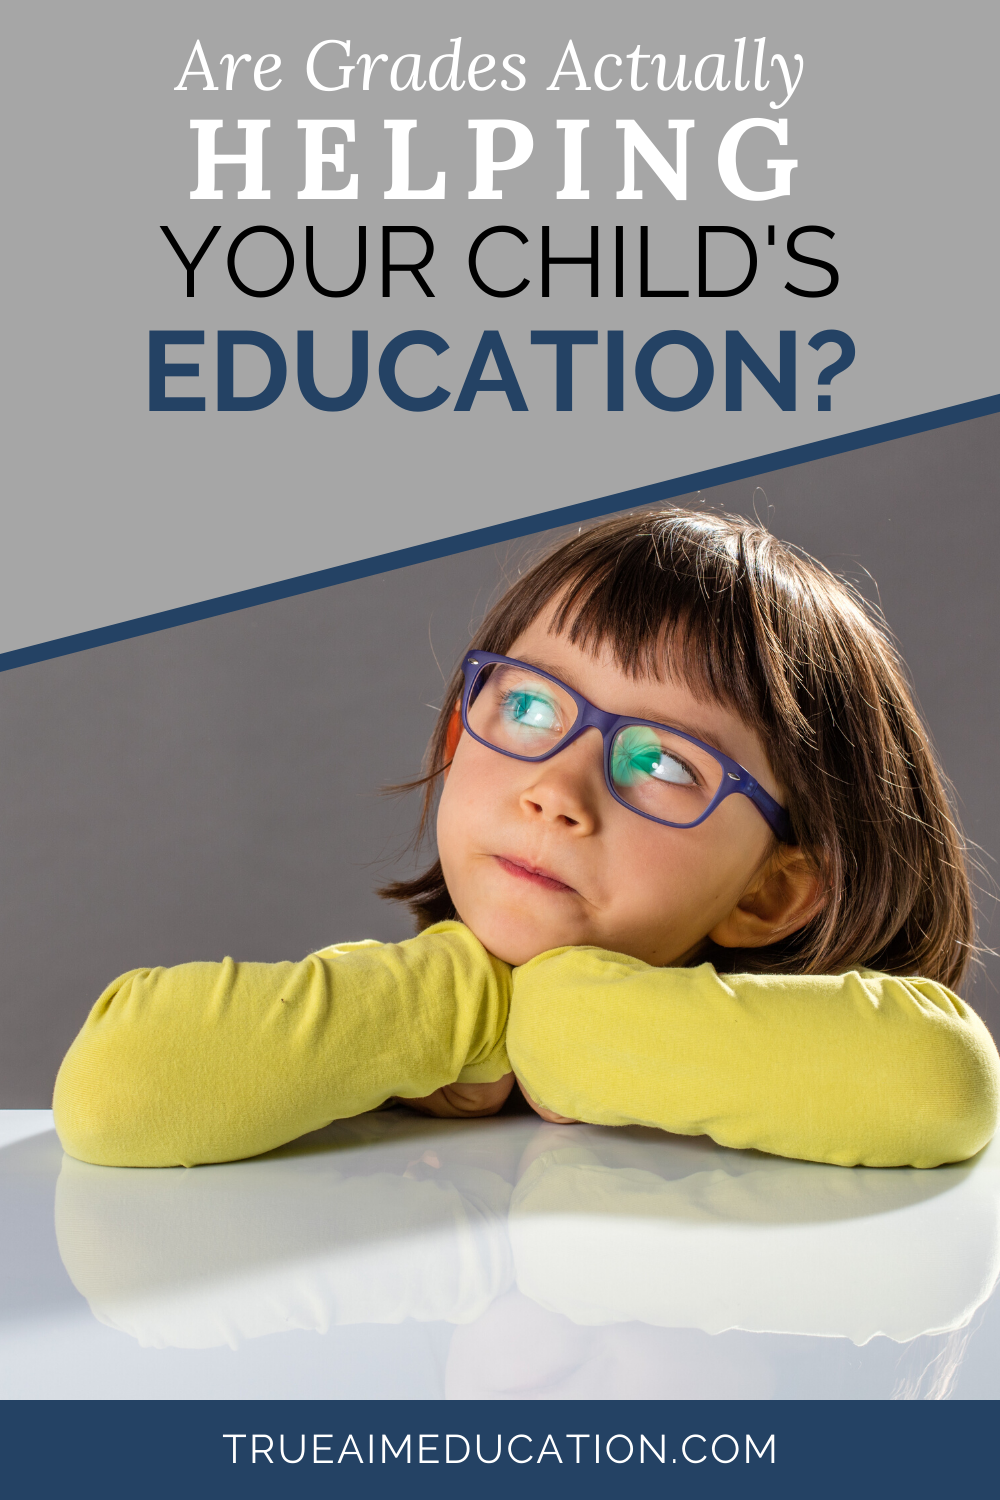 Are Grades Actually Helping Your Child's Education?